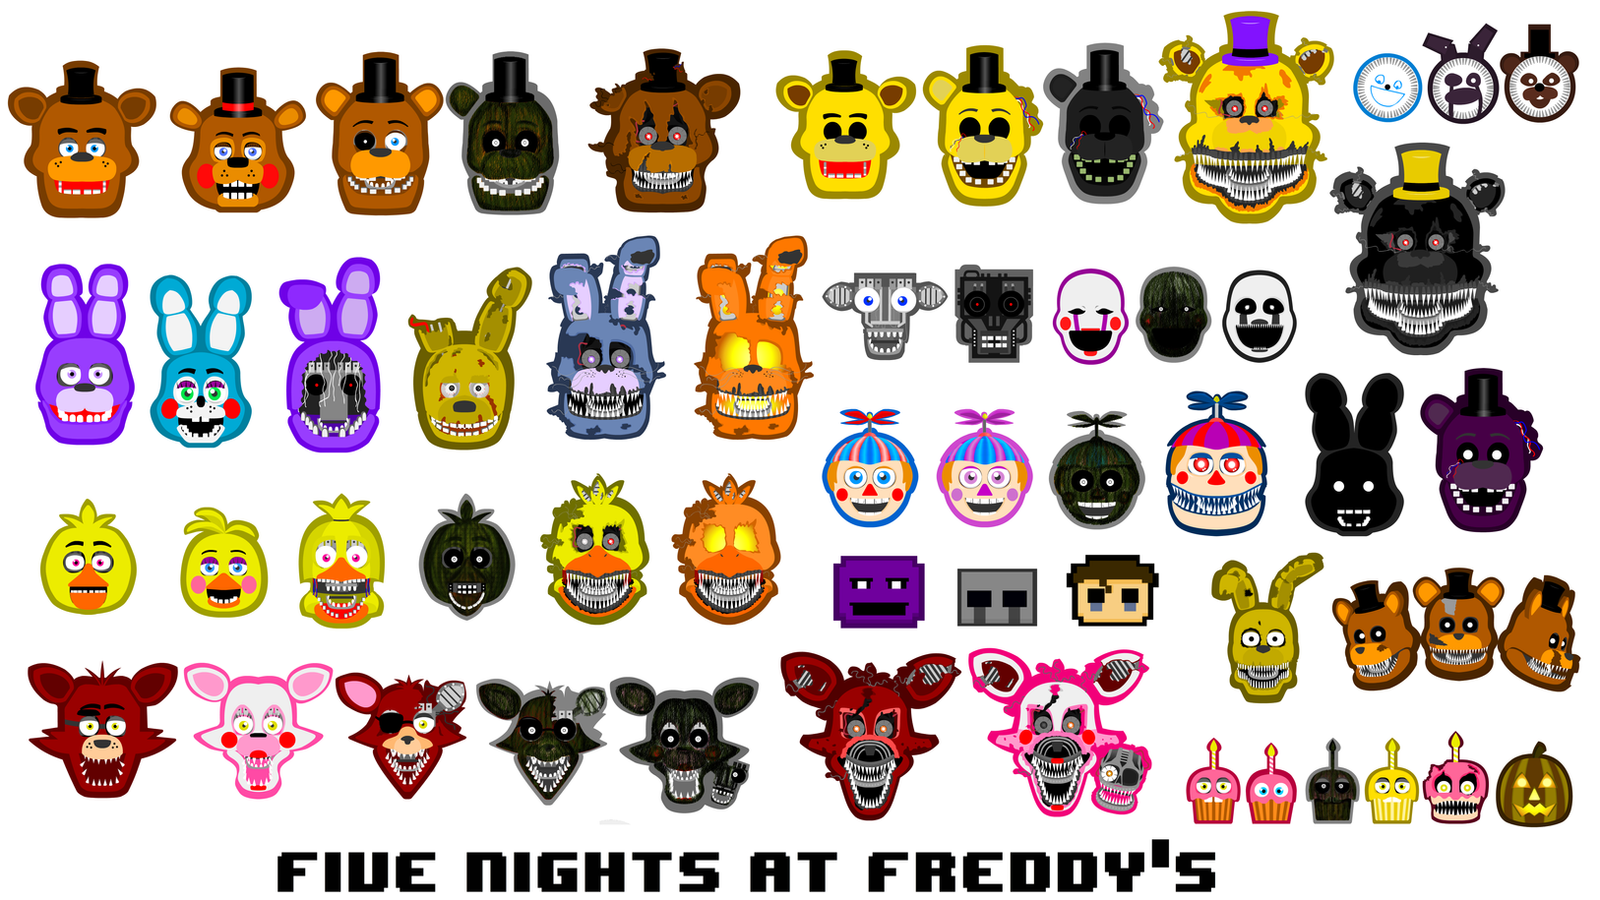 Fnaf all characters by hookls on deviantart